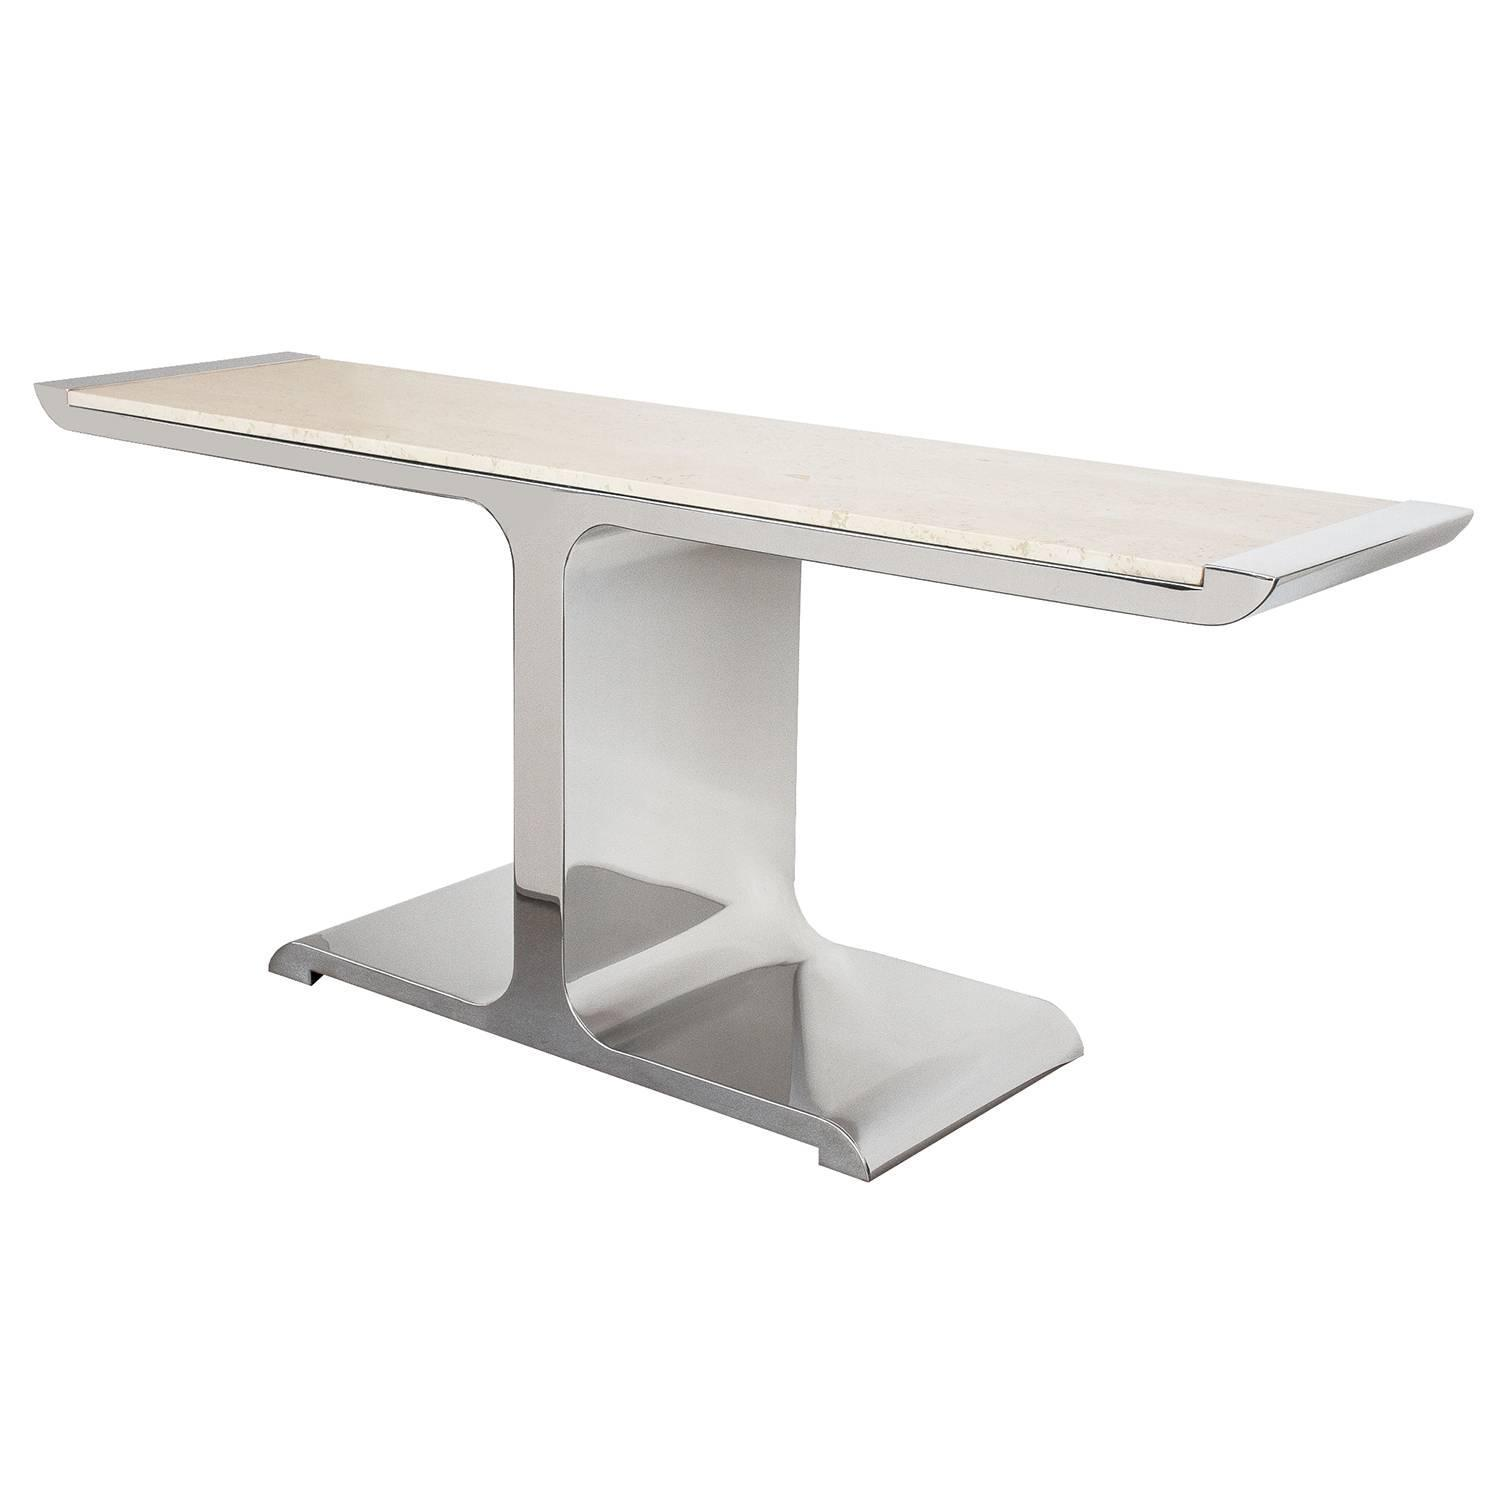 brueton polished steel and travertine eagle console table at stdibs -